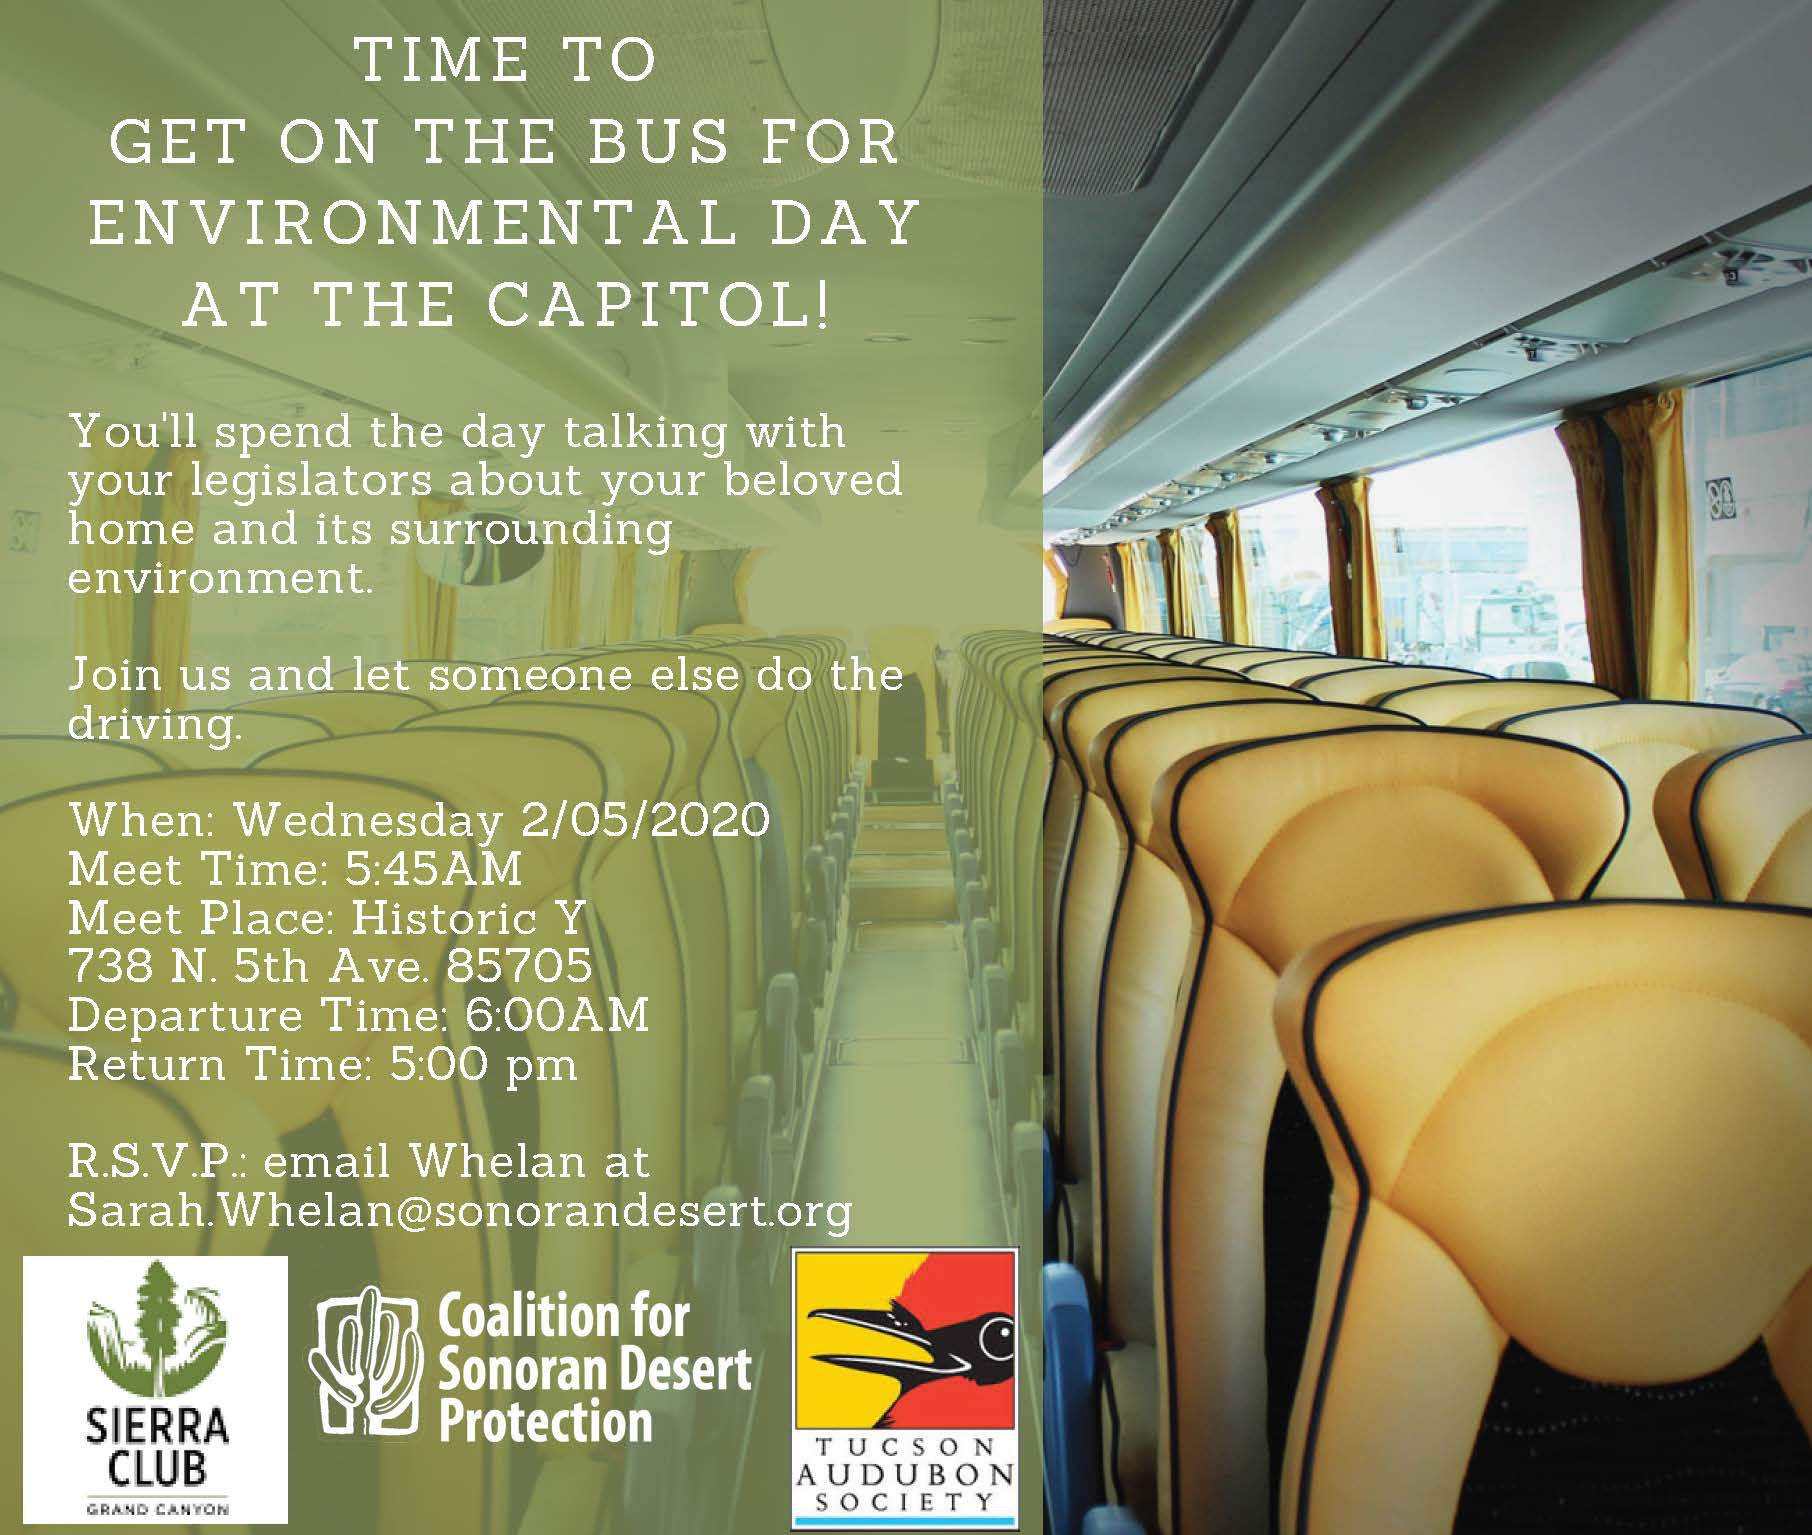 Get on the Bus from Tucson to Environmental Lobby Day